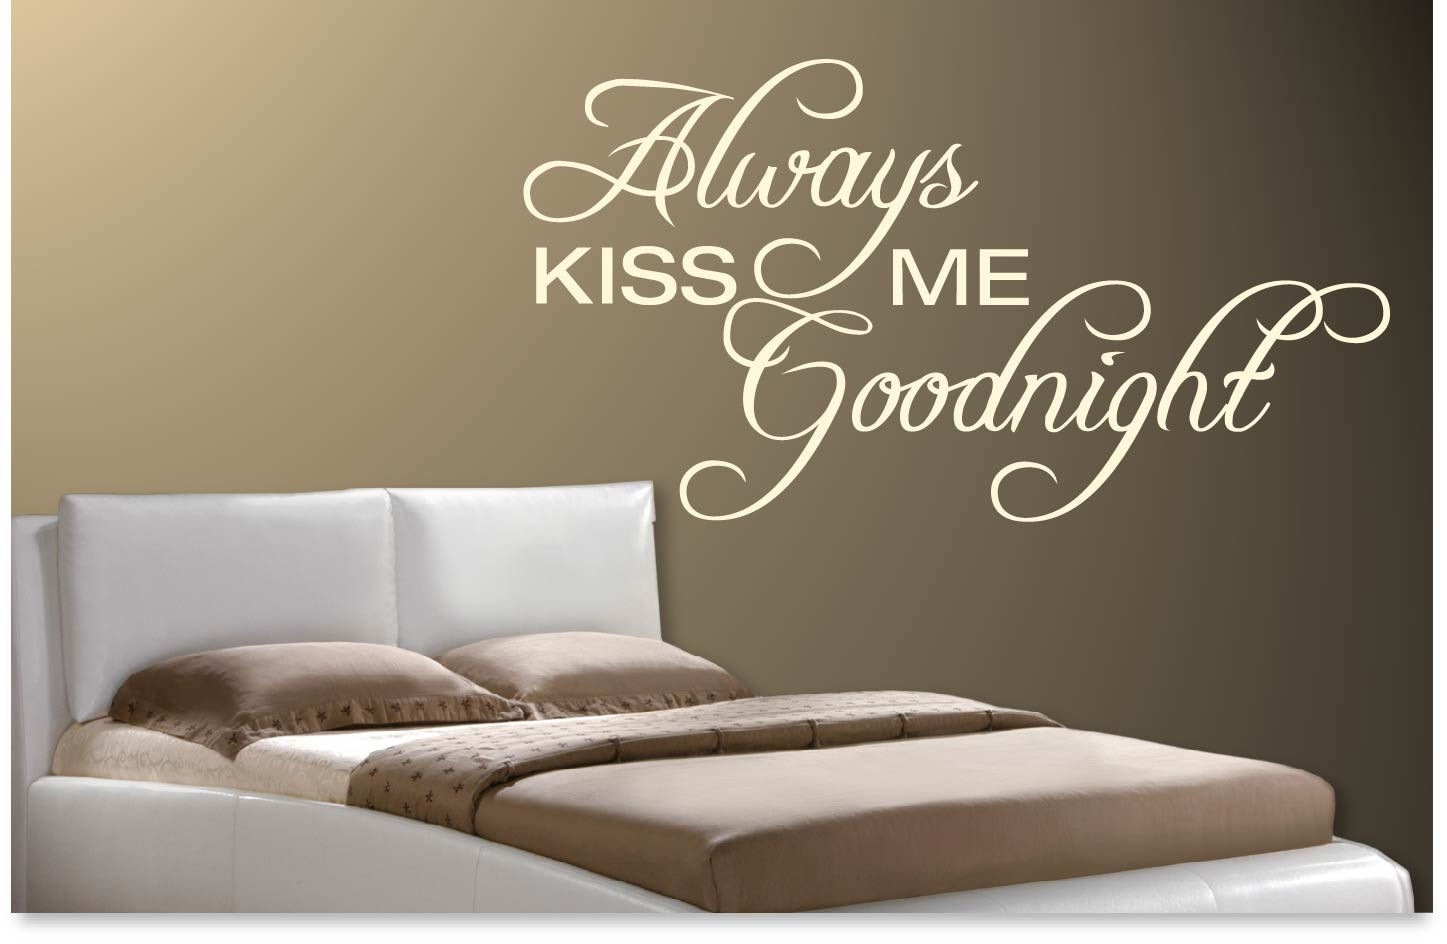 Muursticker Always kiss me goodnight  De Fabriek Muurstickers